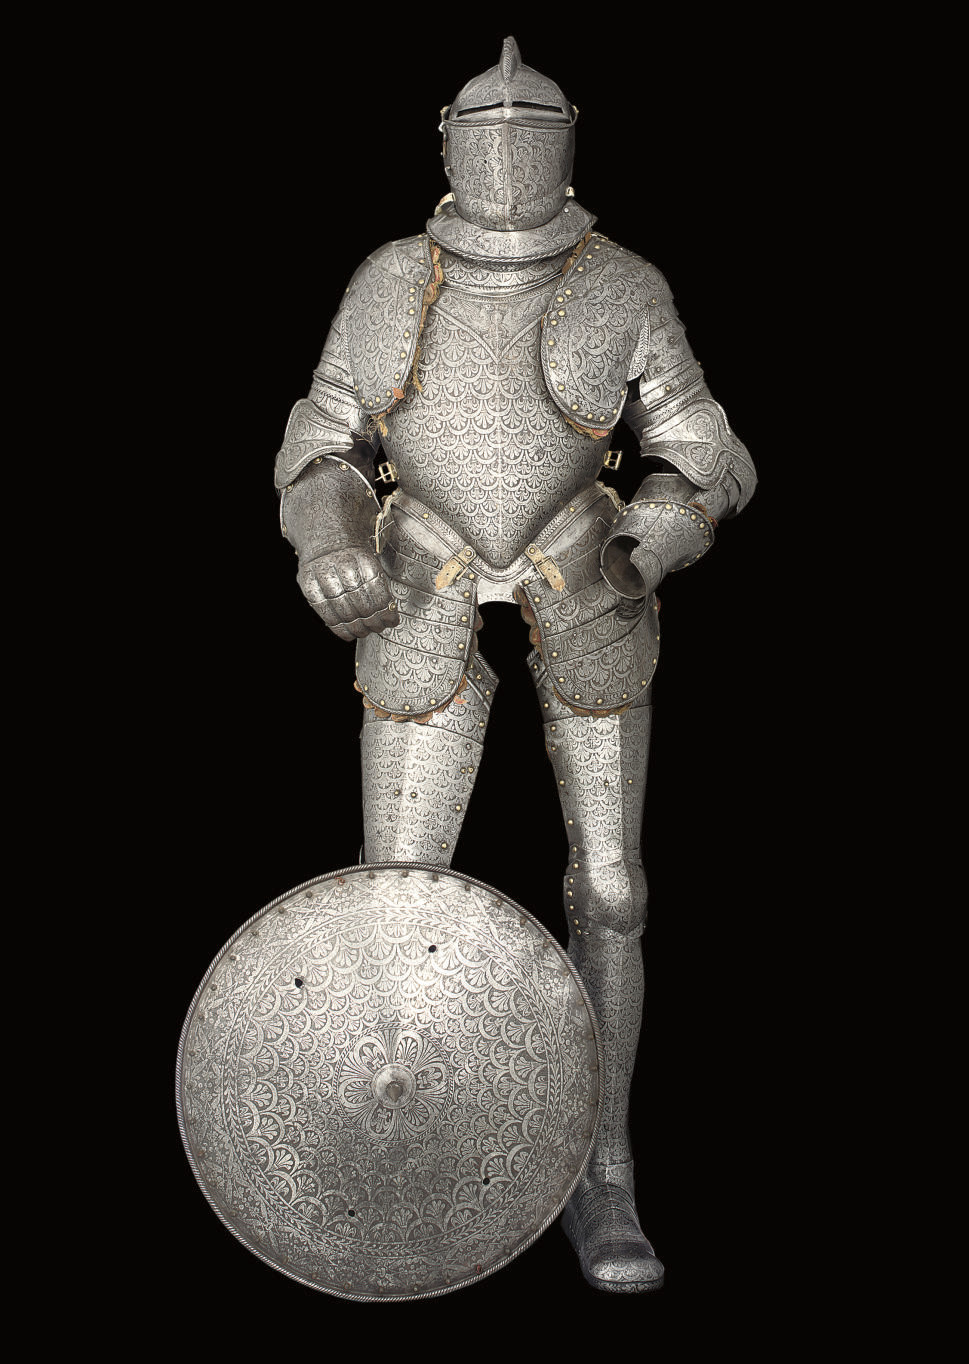 AN ETCHED FULL ARMOUR IN LATE